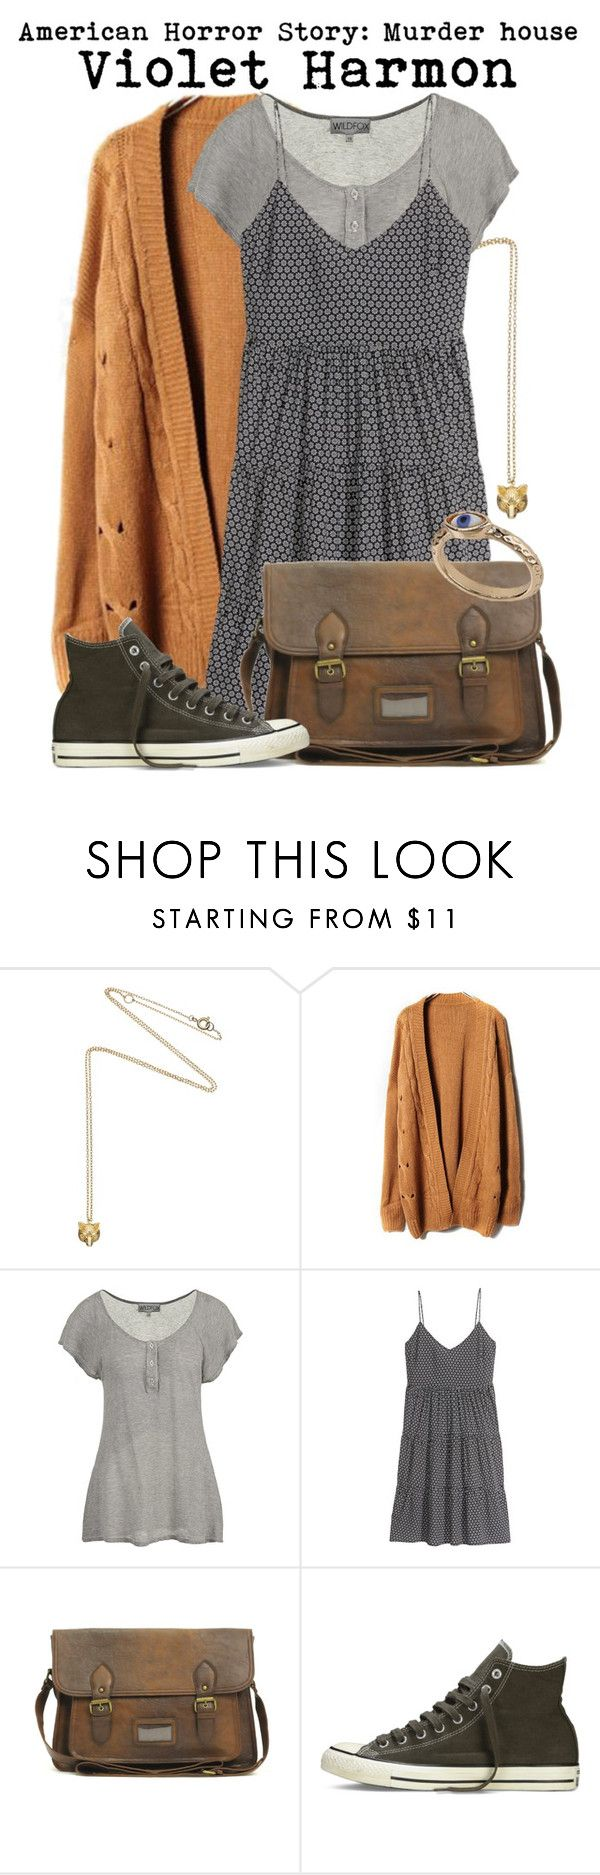 """""""American horror story- Violet Harmon"""" by darcy-watson ❤ liked on Polyvore featuring Estella Bartlett, Wildfox, H&M, ASOS, Converse, Topshop, violet and ahs"""